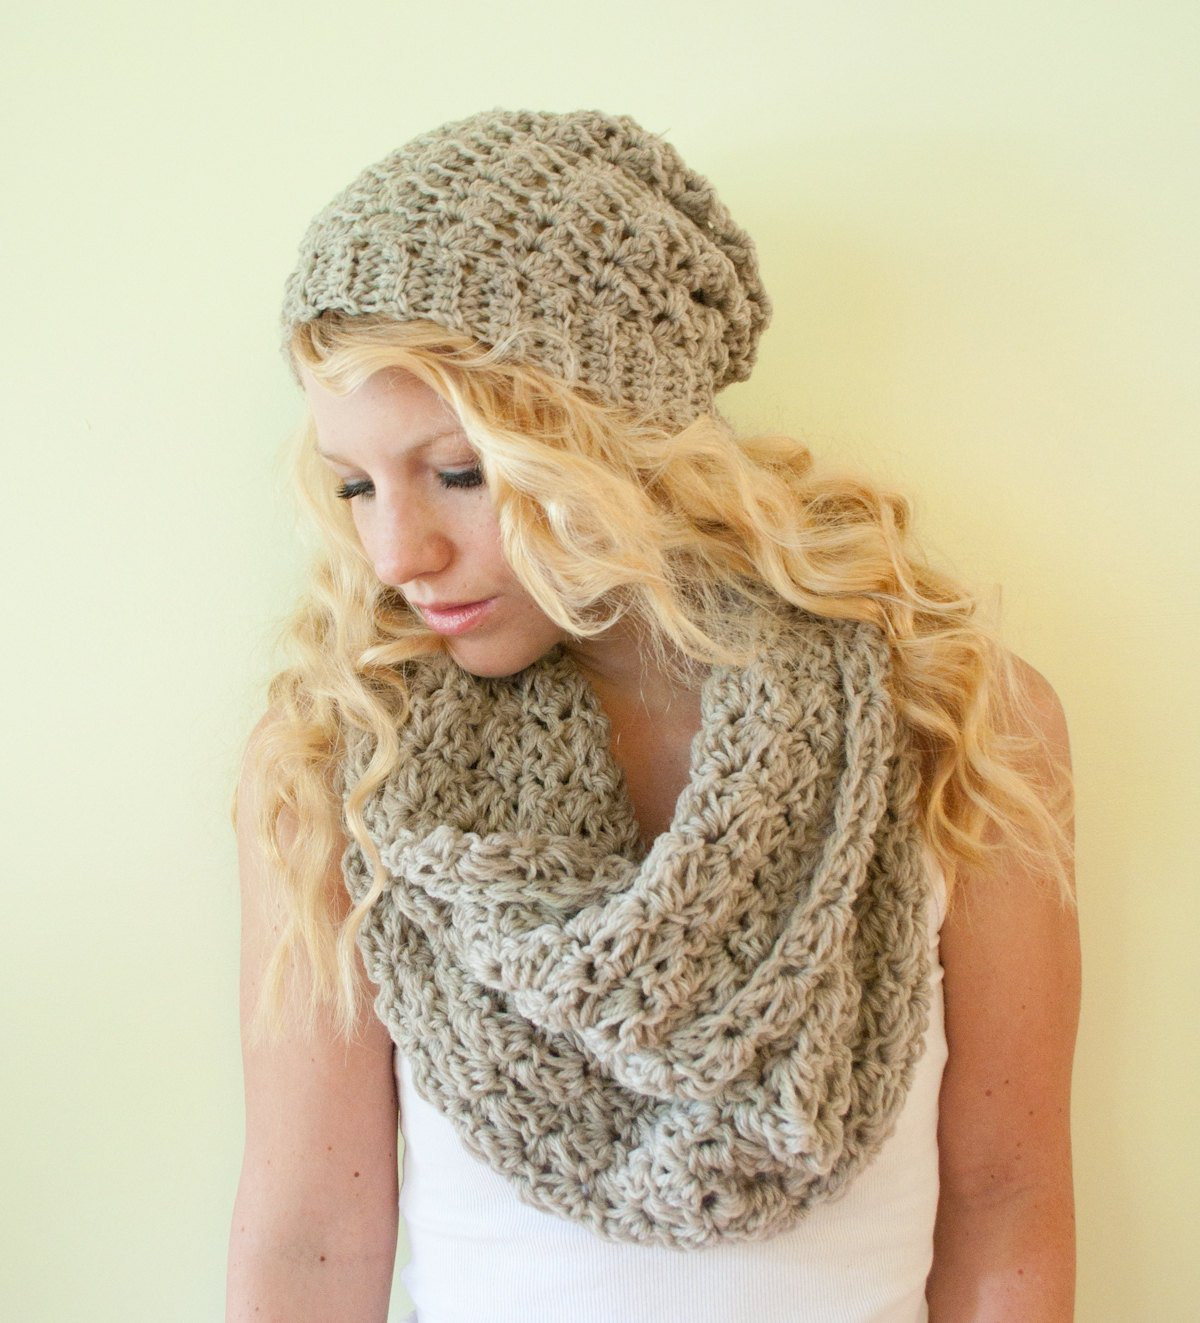 Unique Slouchy Hat Beanie Crocheted Oatmeal Wool by Autumnandindigo Crochet Hat and Scarf Of Superb 50 Pics Crochet Hat and Scarf